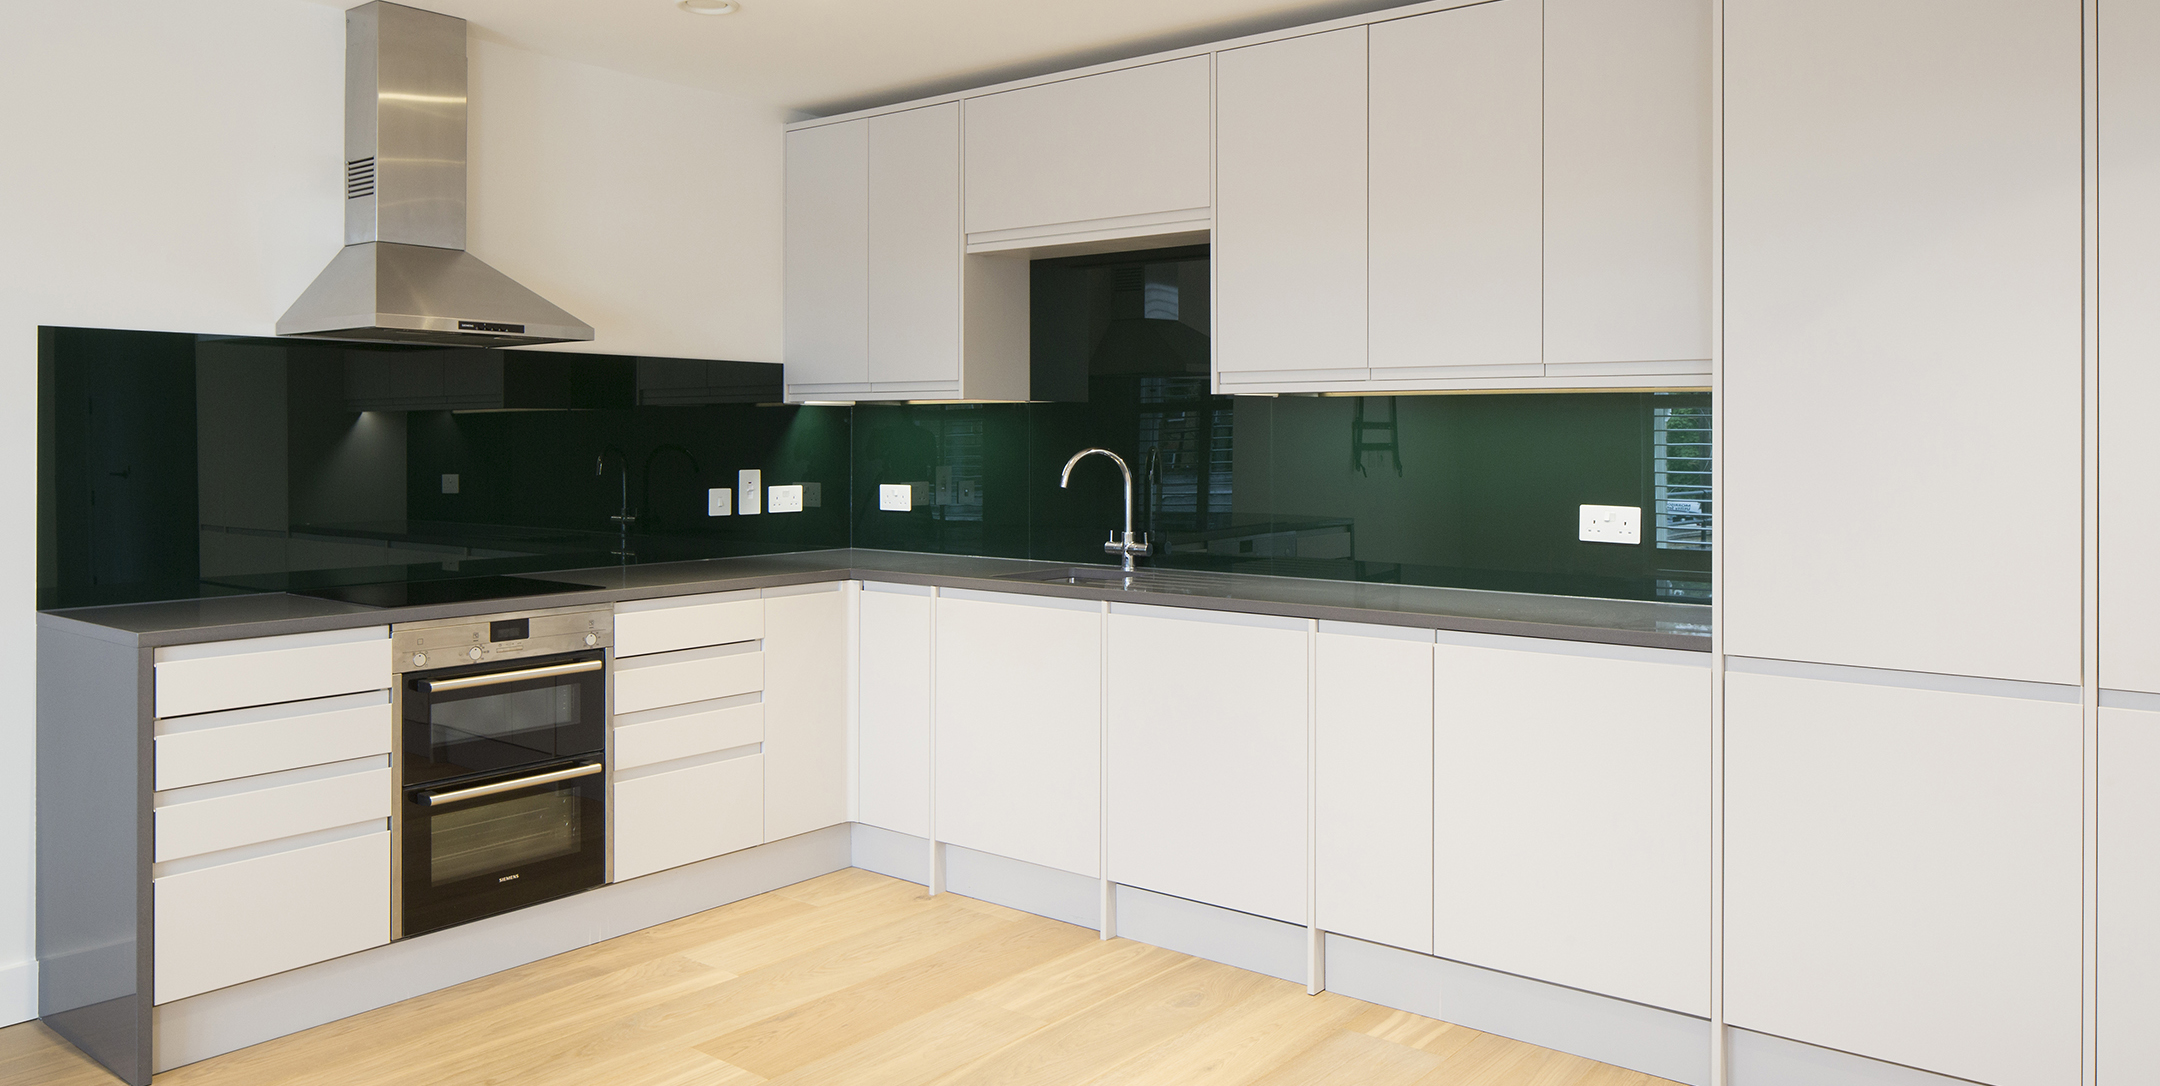 Home Refurbishments Marylebone - Ashville Inc